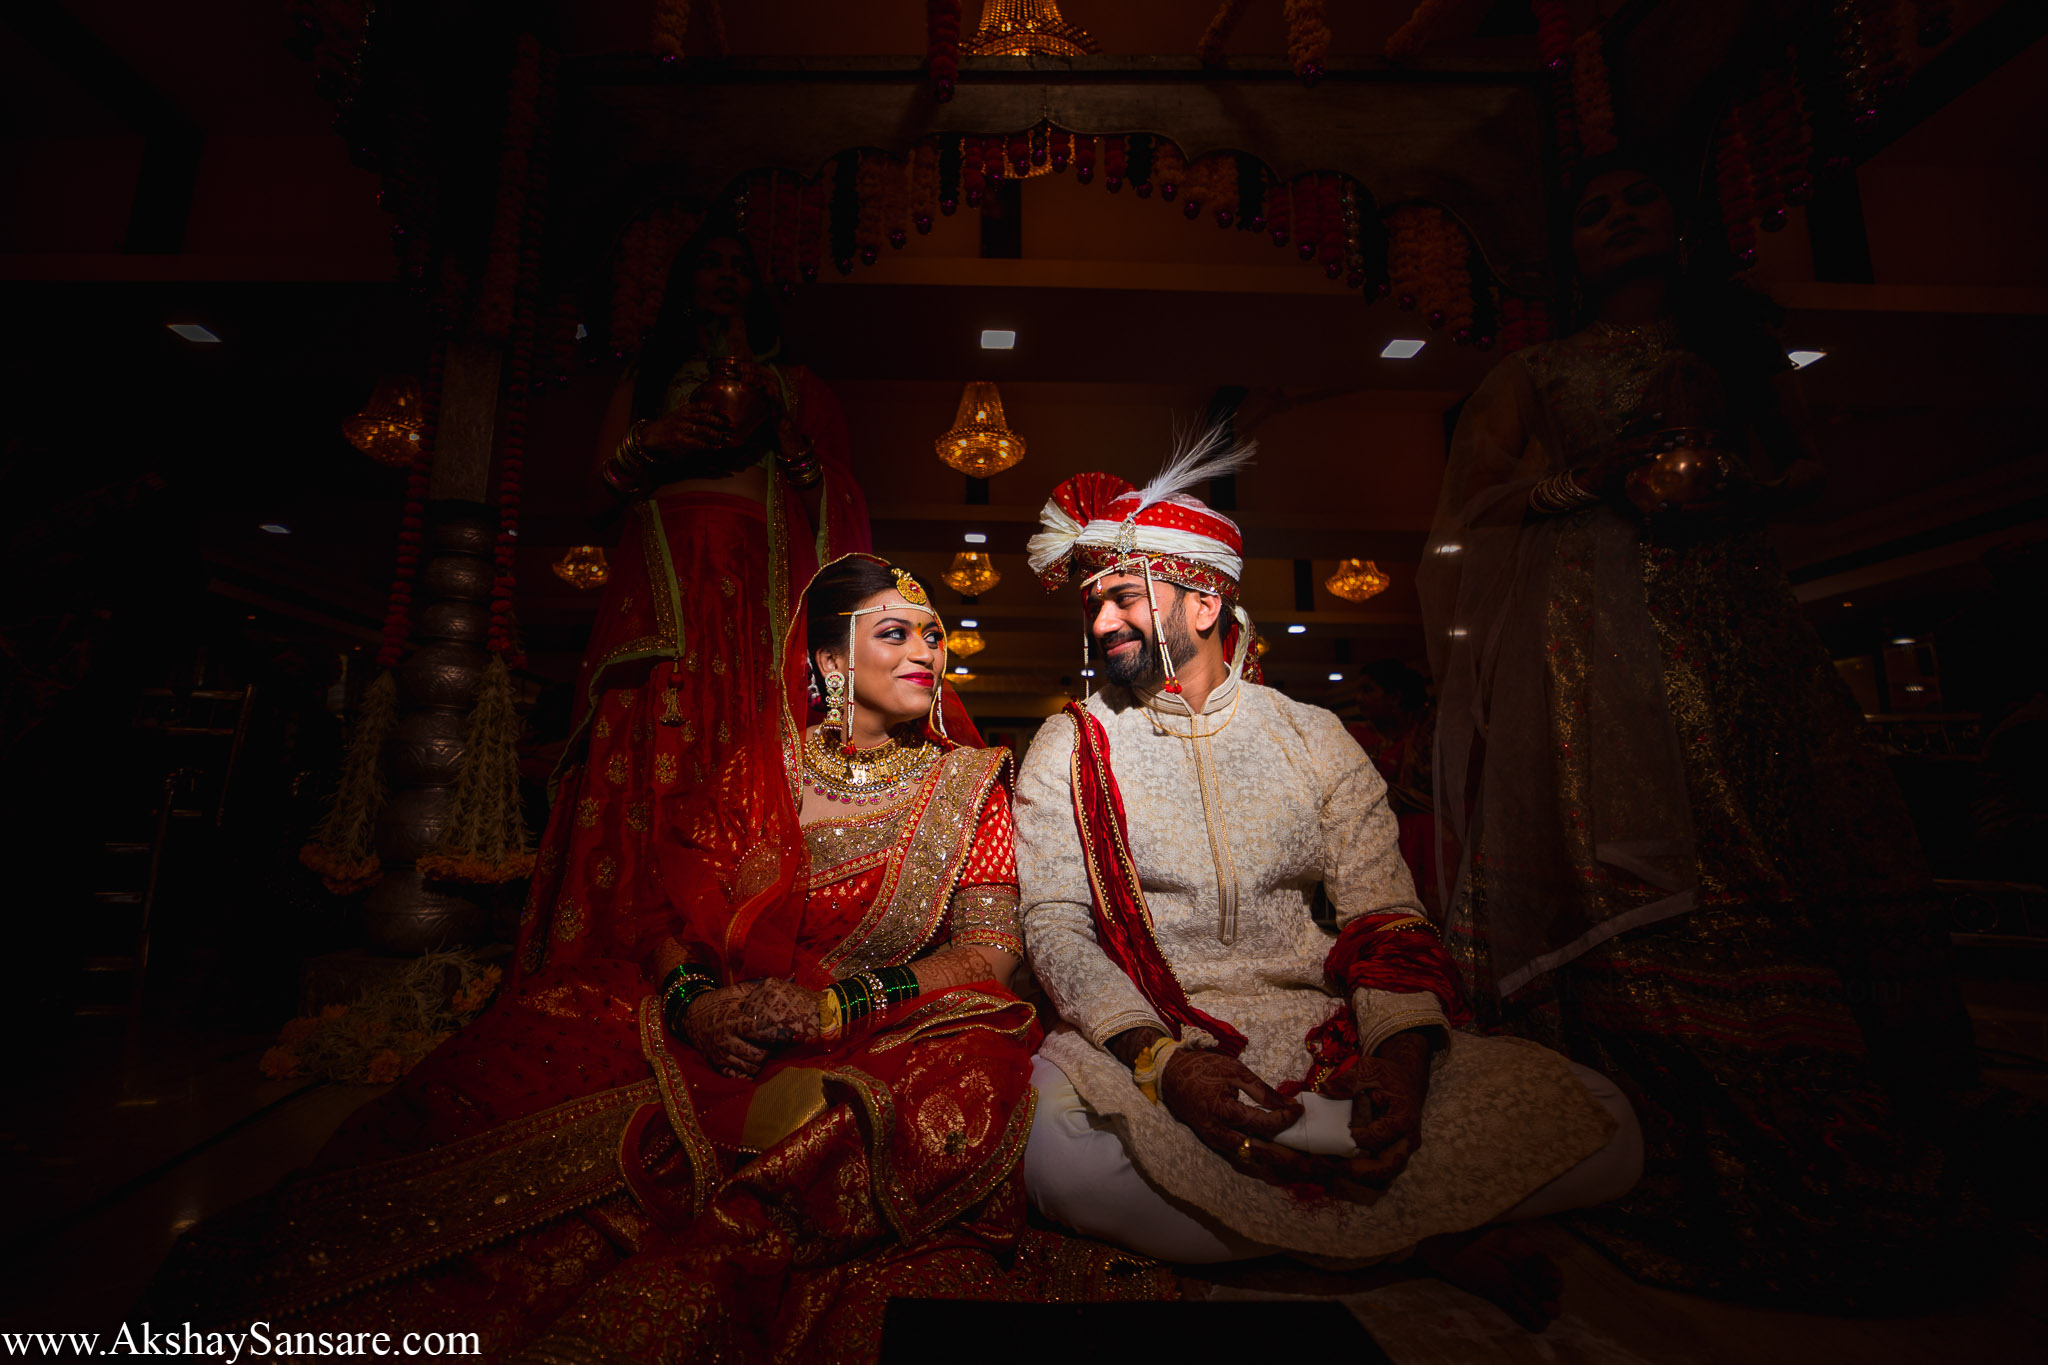 Ajay & Devika Akshay Sansare Photography Best Candid wedding photographer in mumbai india22.jpg